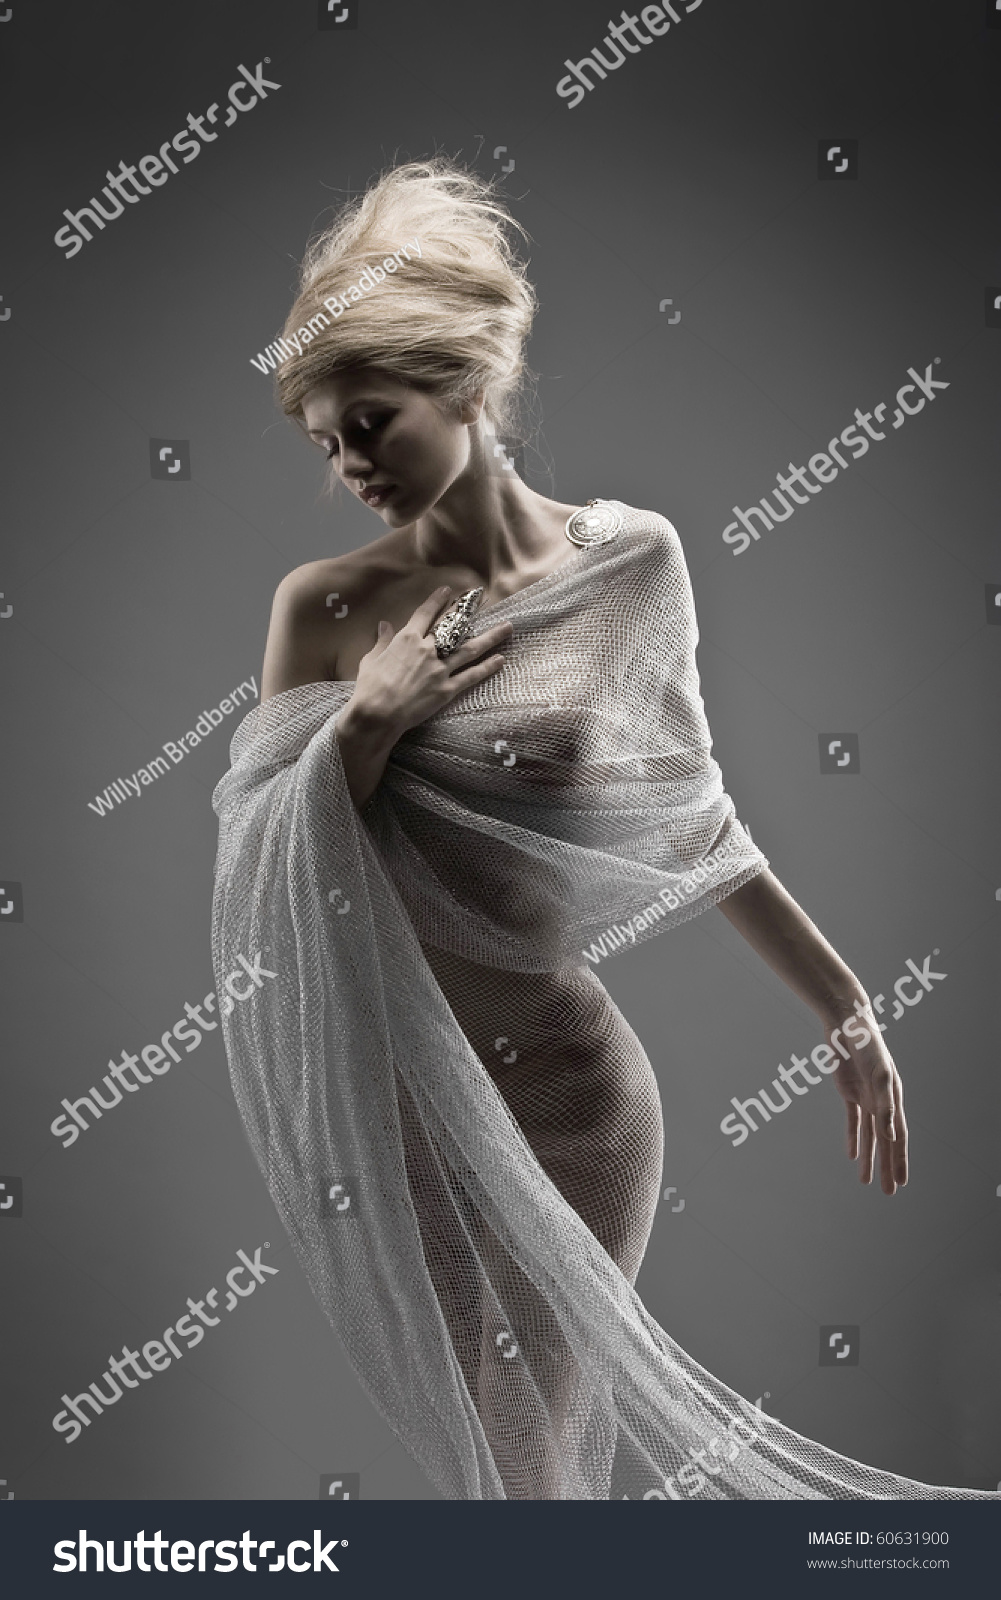 Fashion Beautiful Glamour Girl Creative Stylized Stock